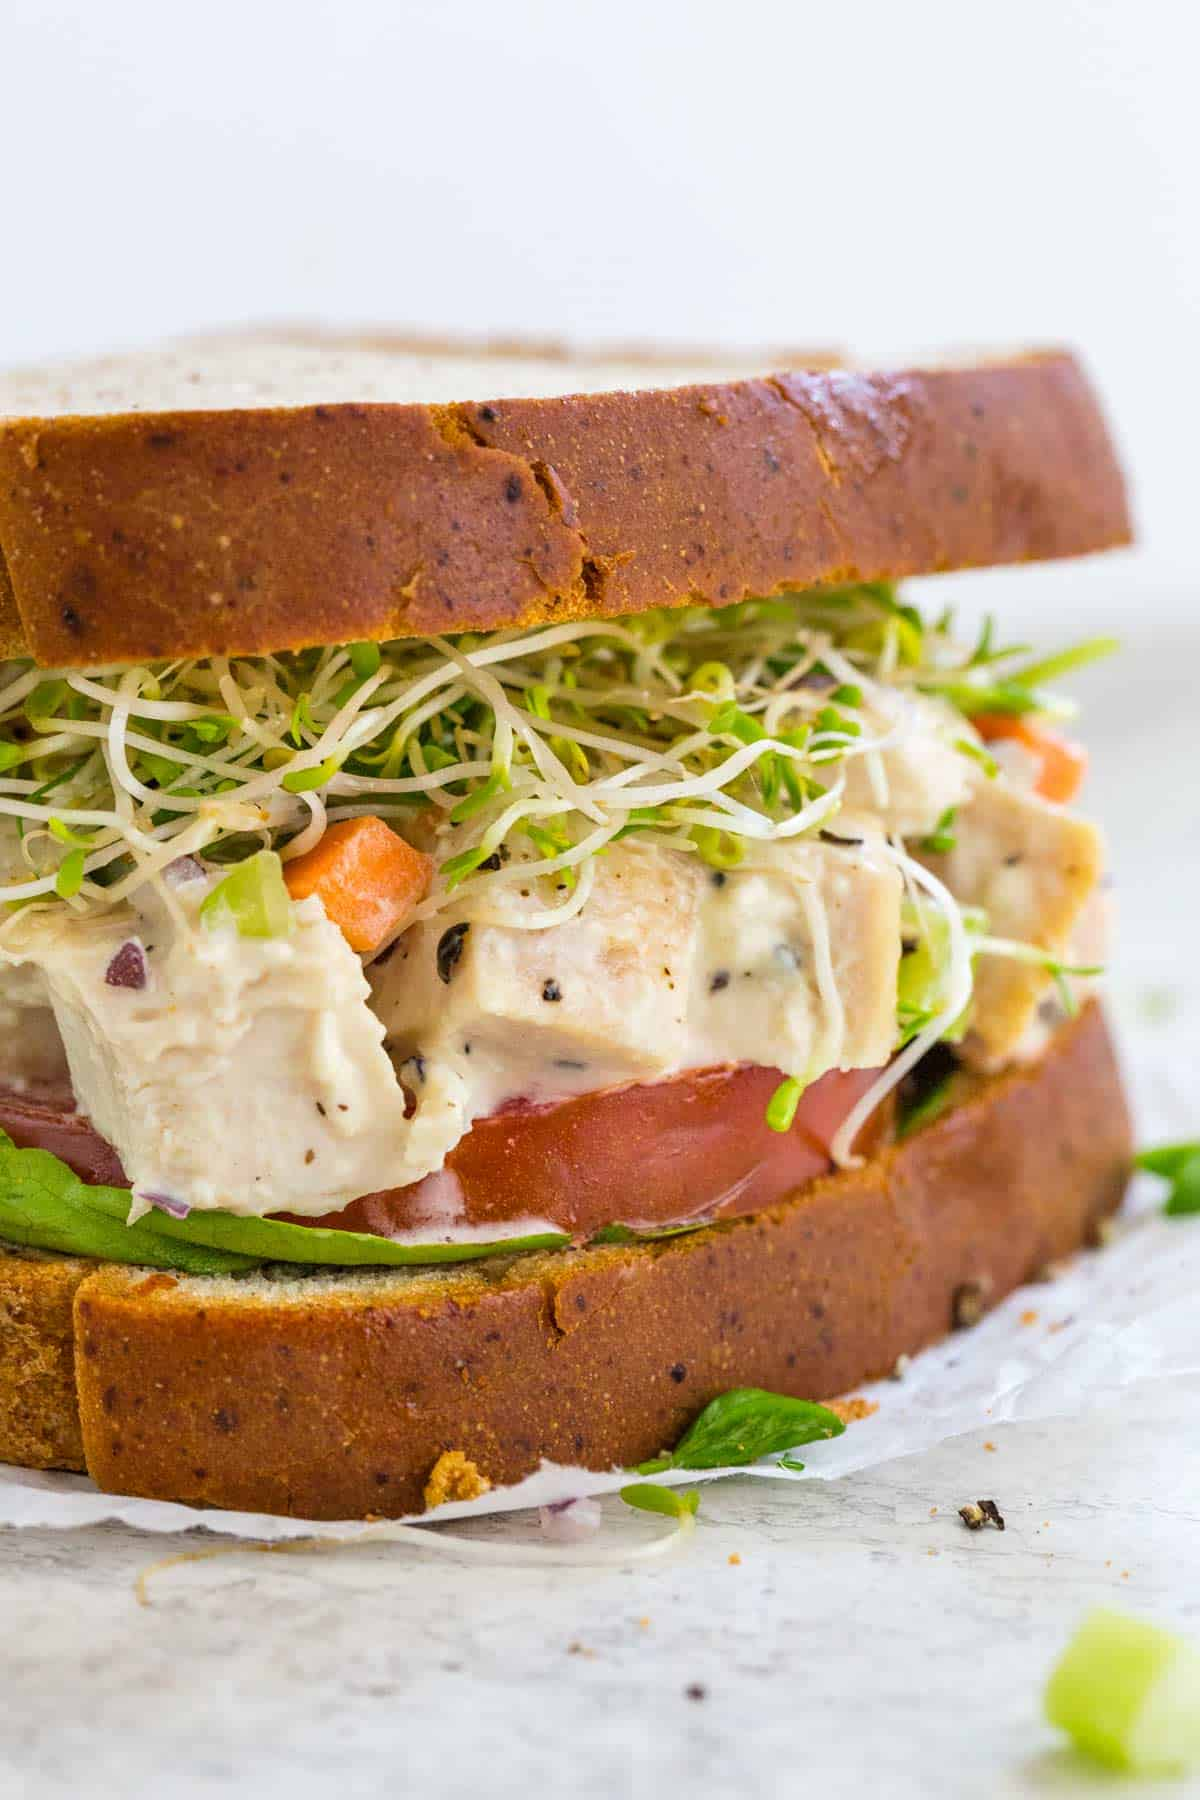 Closeup photo showing the inside of a chicken salad sandwich